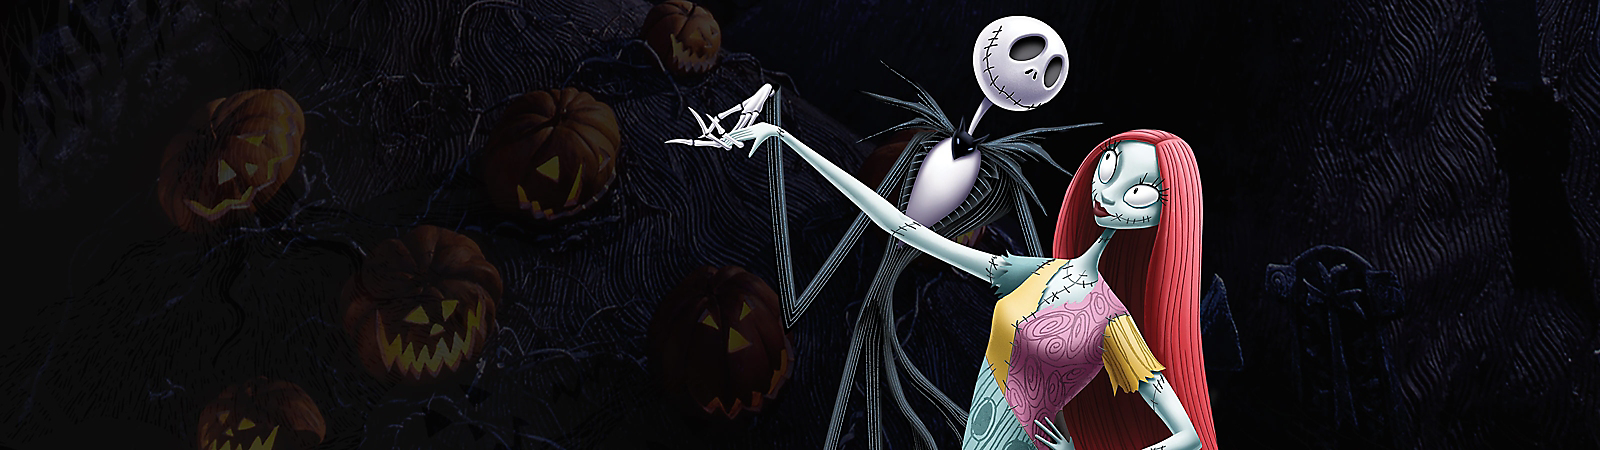 Tim Burton Nightmare Before Christmas Artwork.The Nightmare Before Christmas Shopdisney